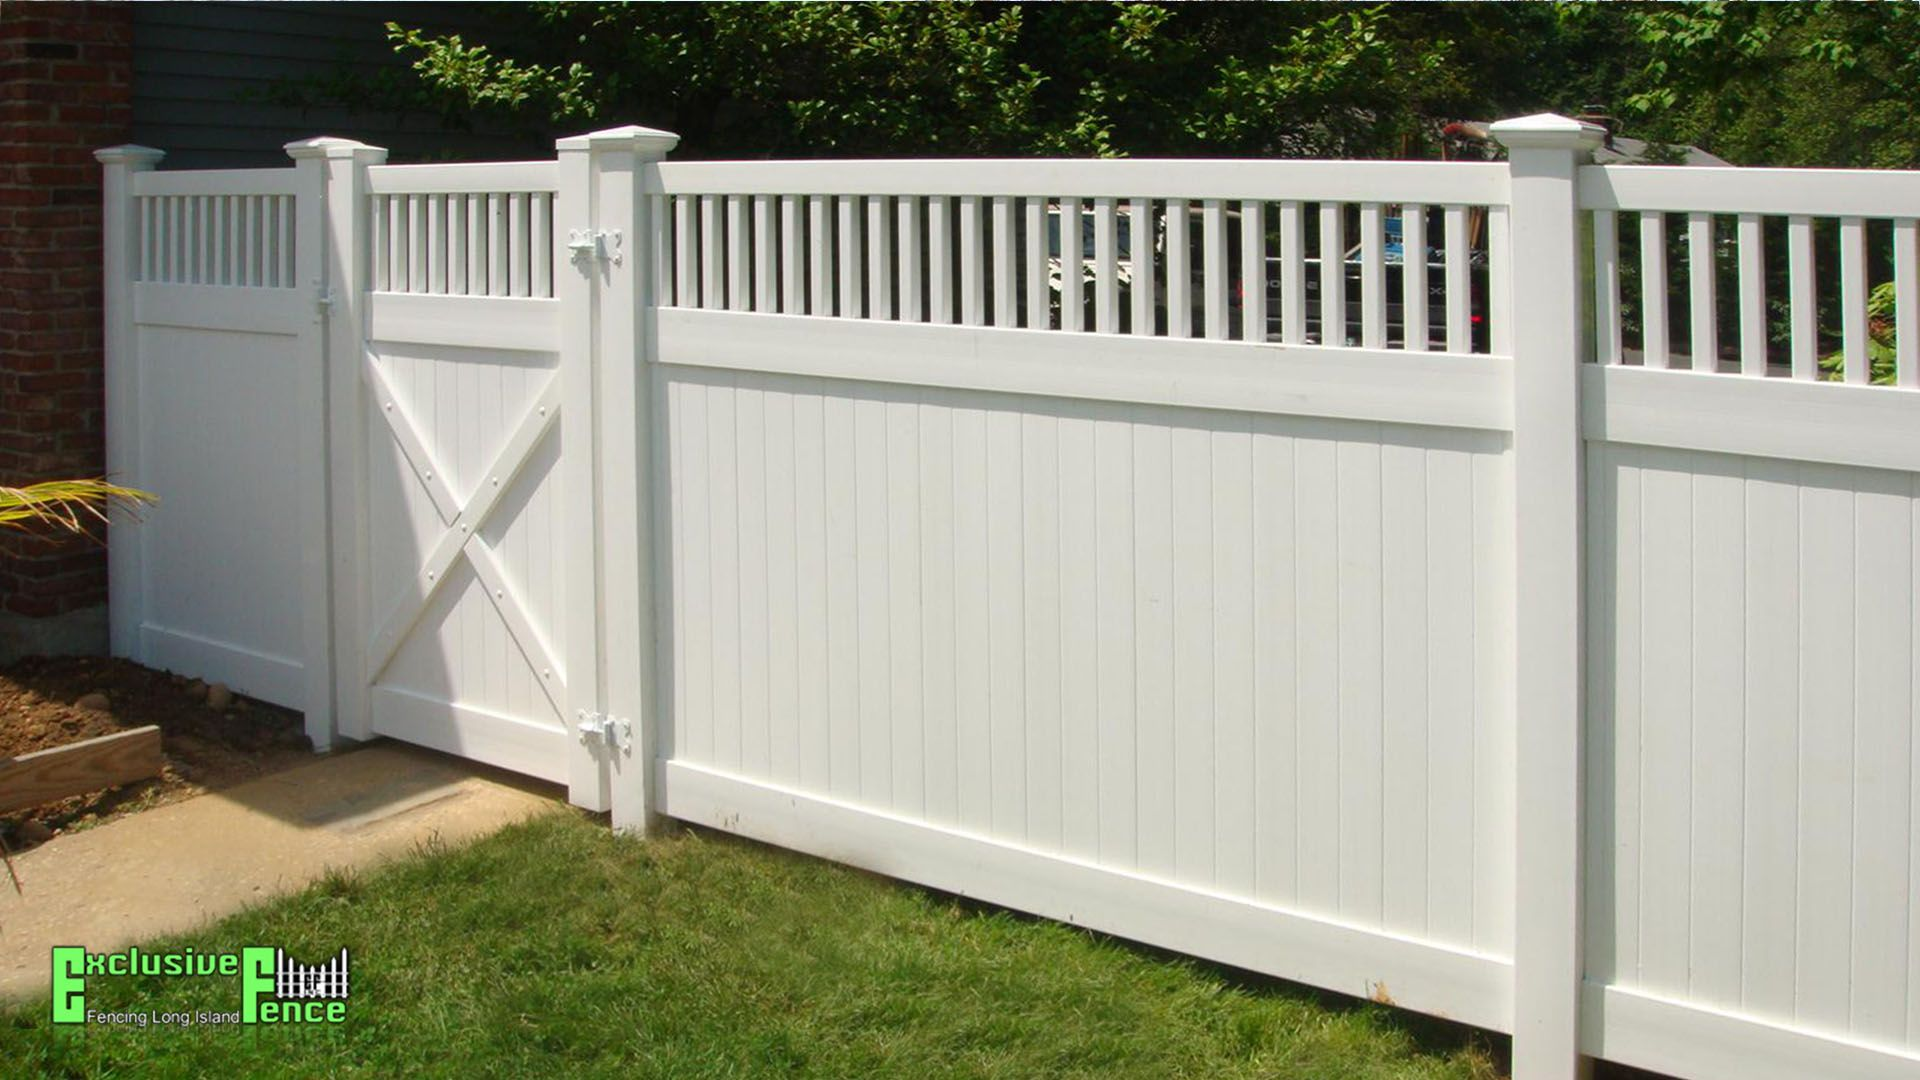 Vinyl Fence Panels vinyl fence panels canada - google search | fences | pinterest